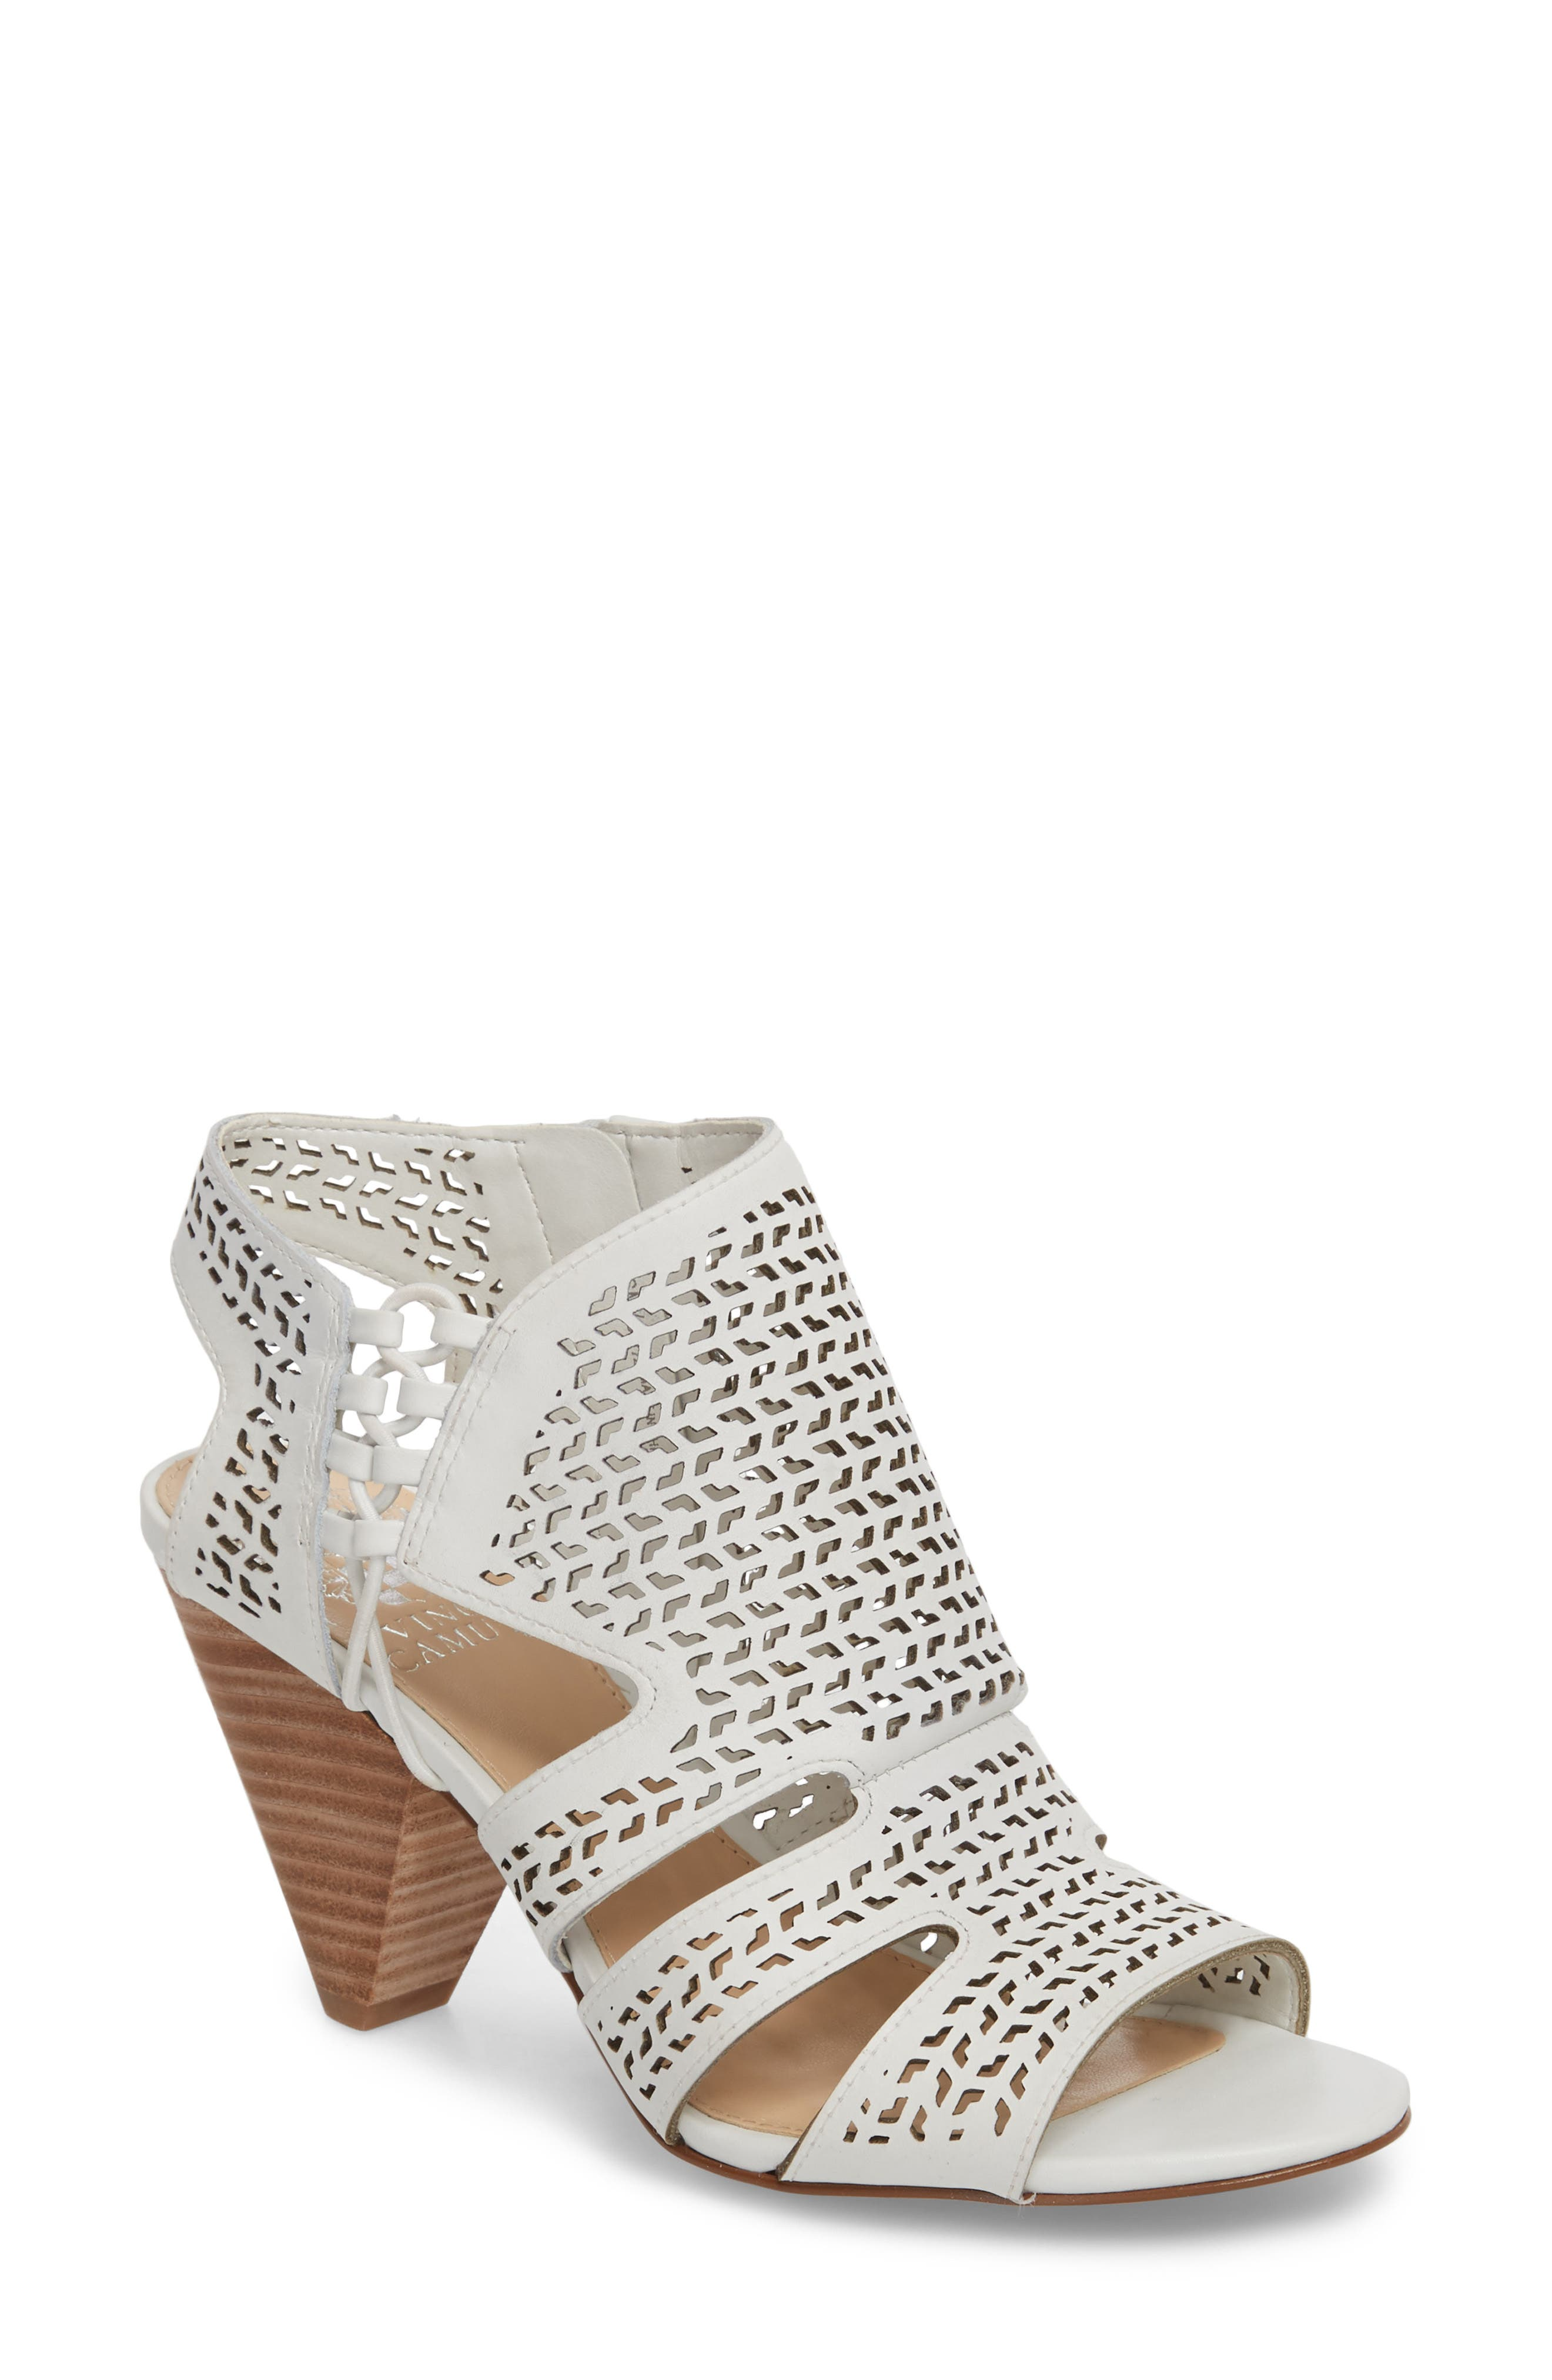 Esten Perforated Sandal,                         Main,                         color, Pure Leather